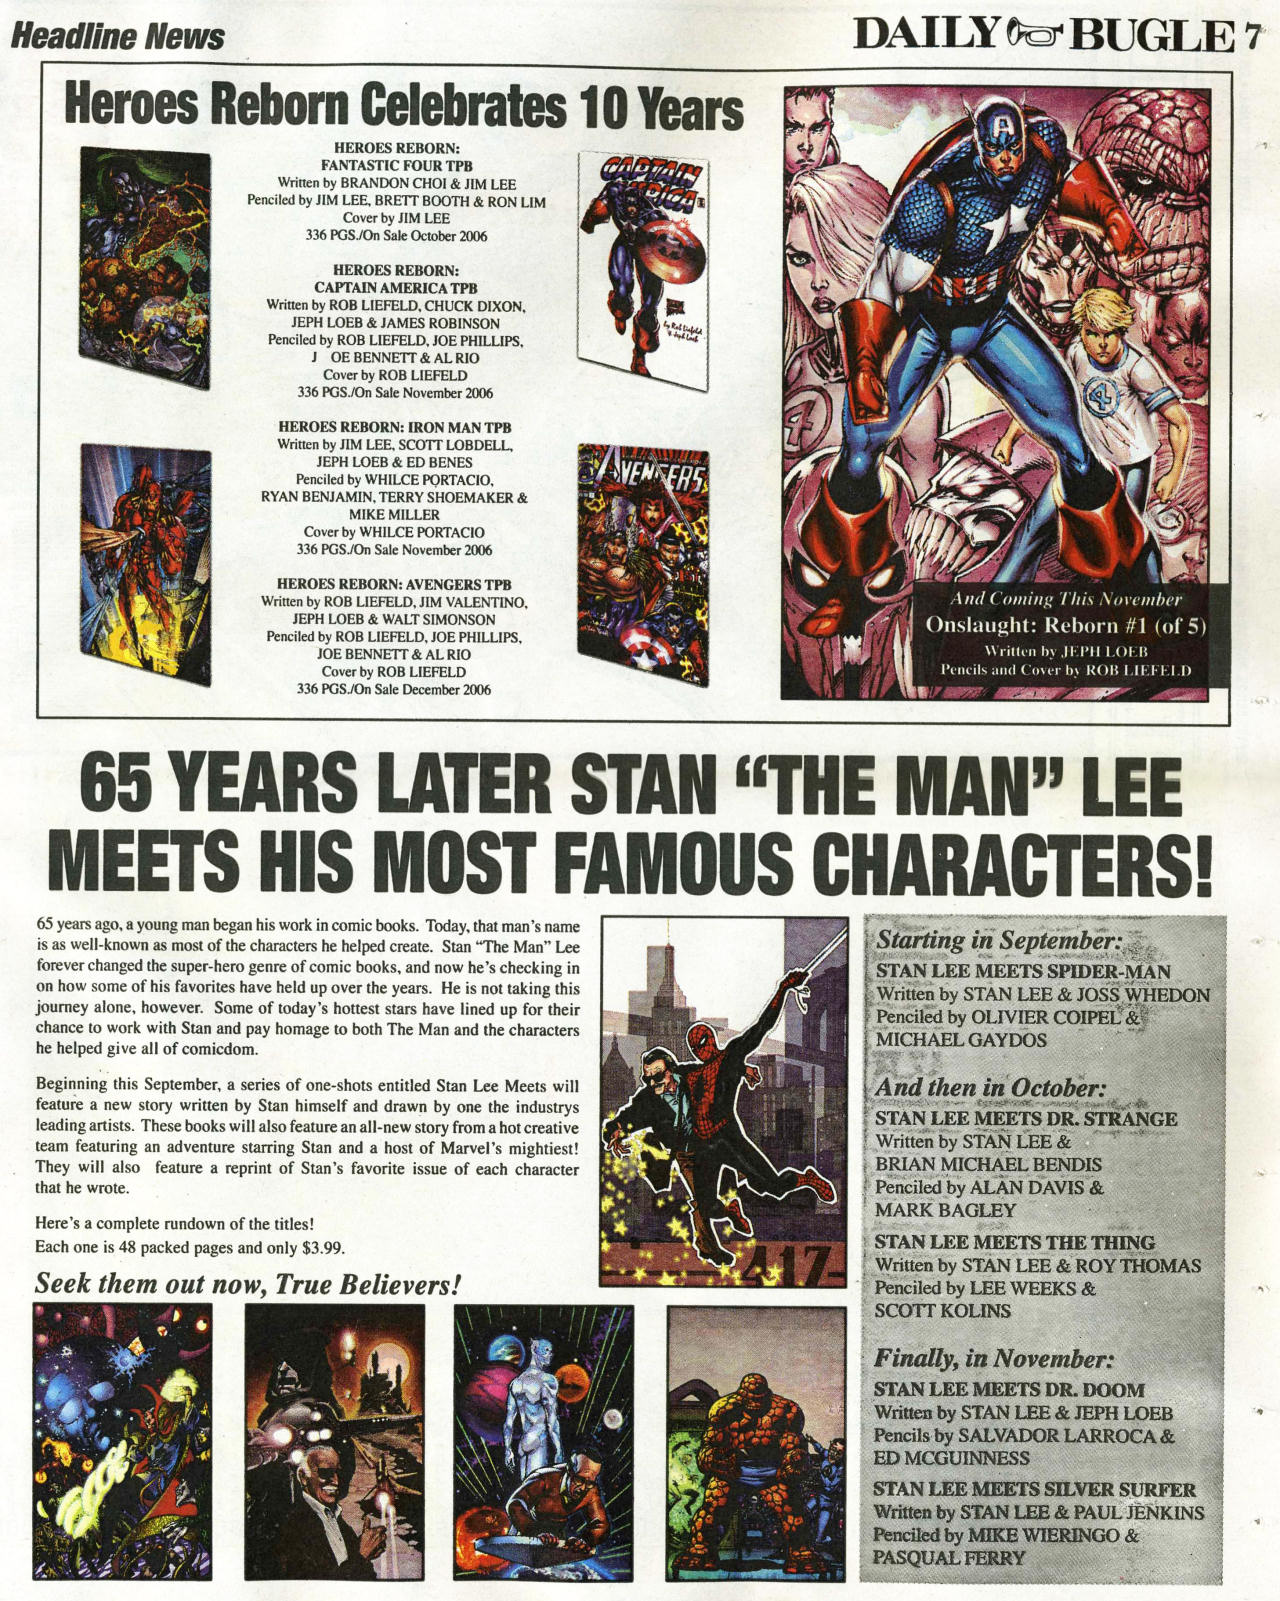 Read online Daily Bugle (2006) comic -  Issue #1 - 7